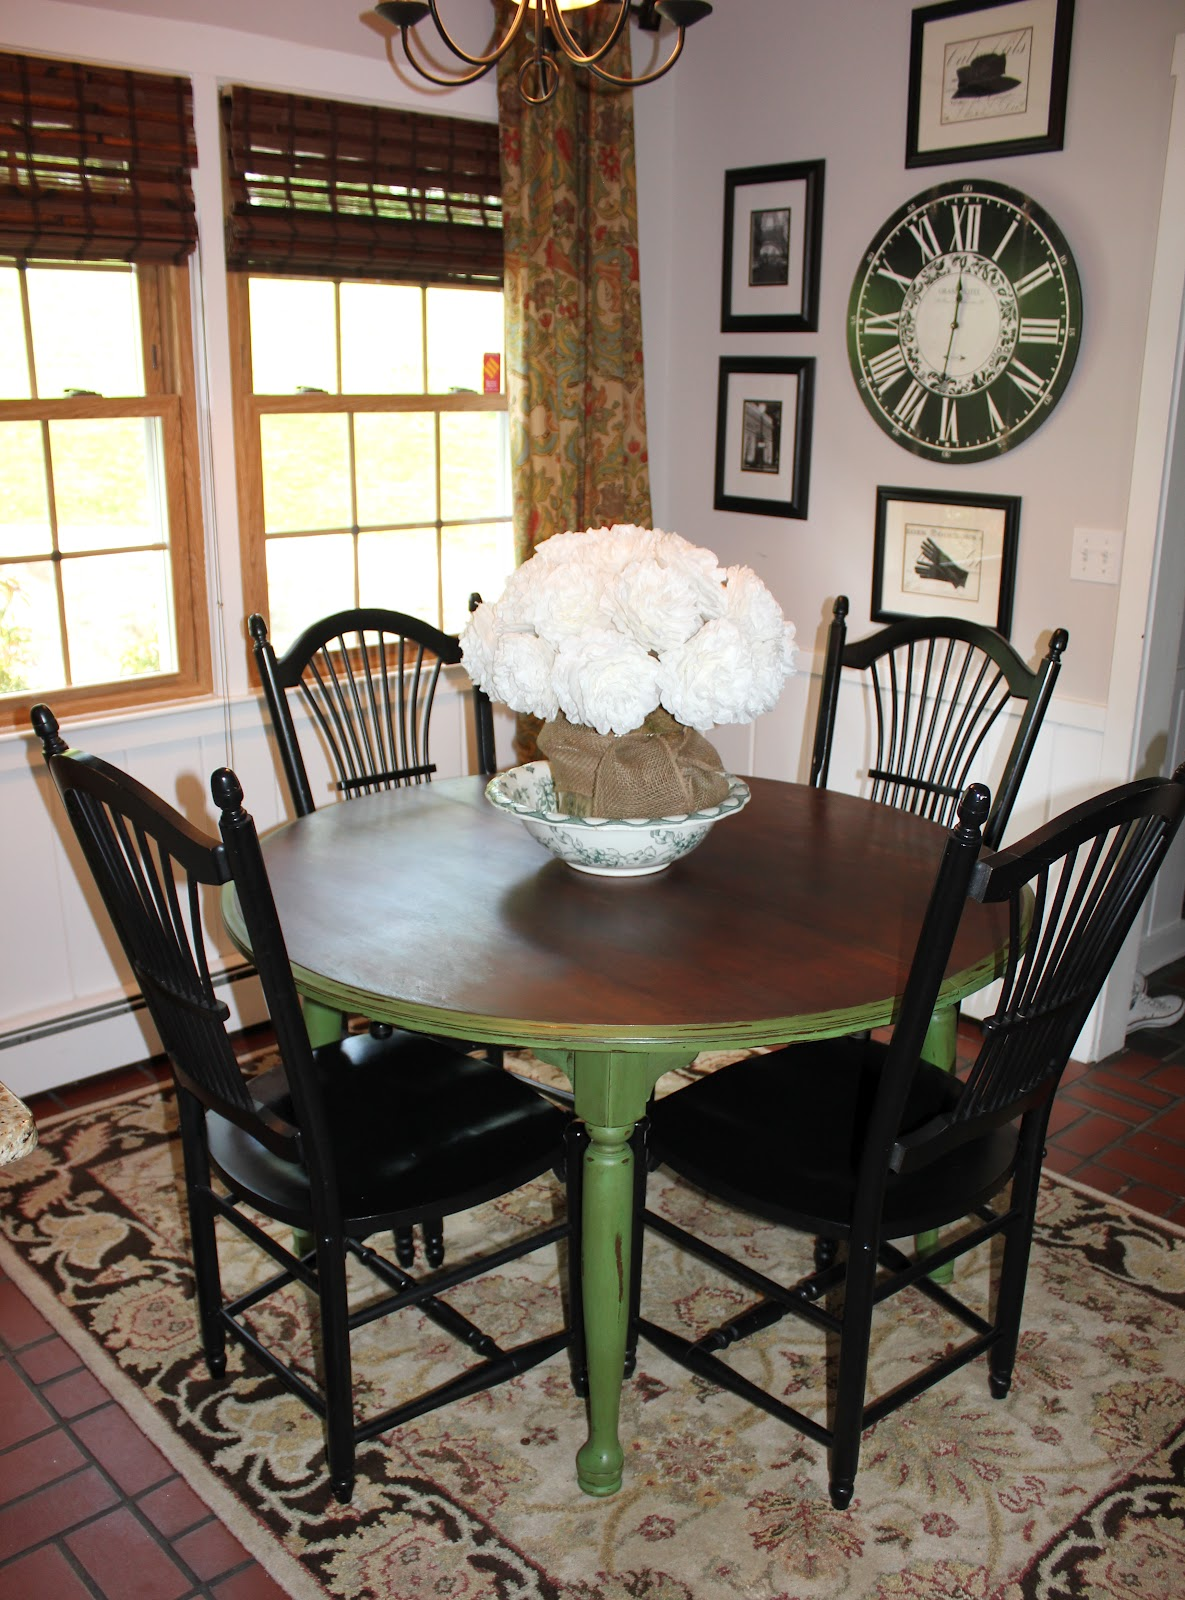 painted kitchen chairs mats costco my passion for decor green with envy the table